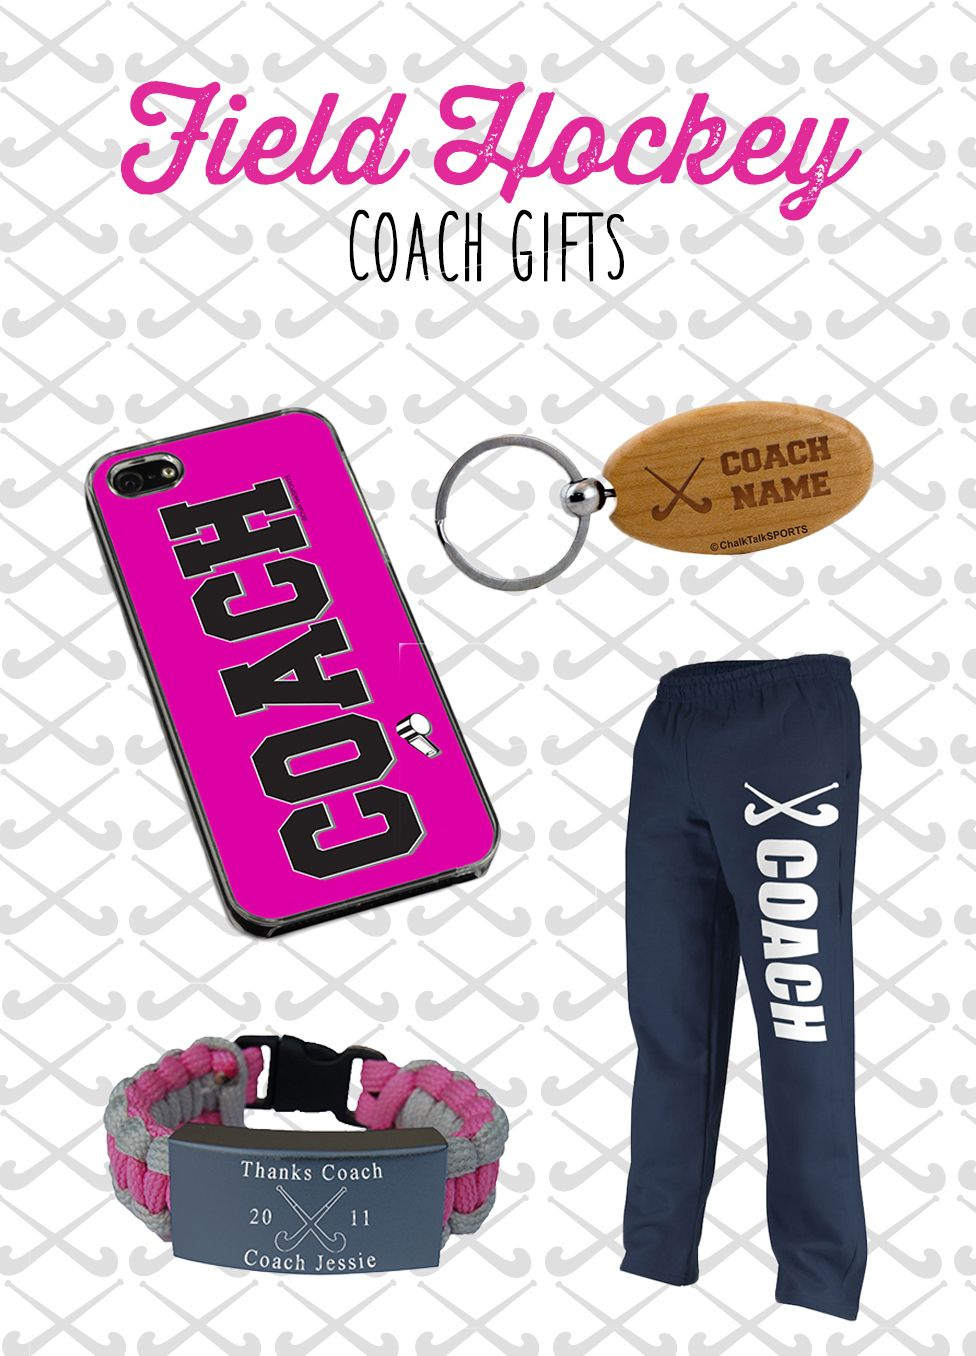 Be Sure To Thank Your Coach For A Fabulous Field Hockey Season With One Of Our Coach Gifts Hockey Coach Gifts Hockey Coach Field Hockey